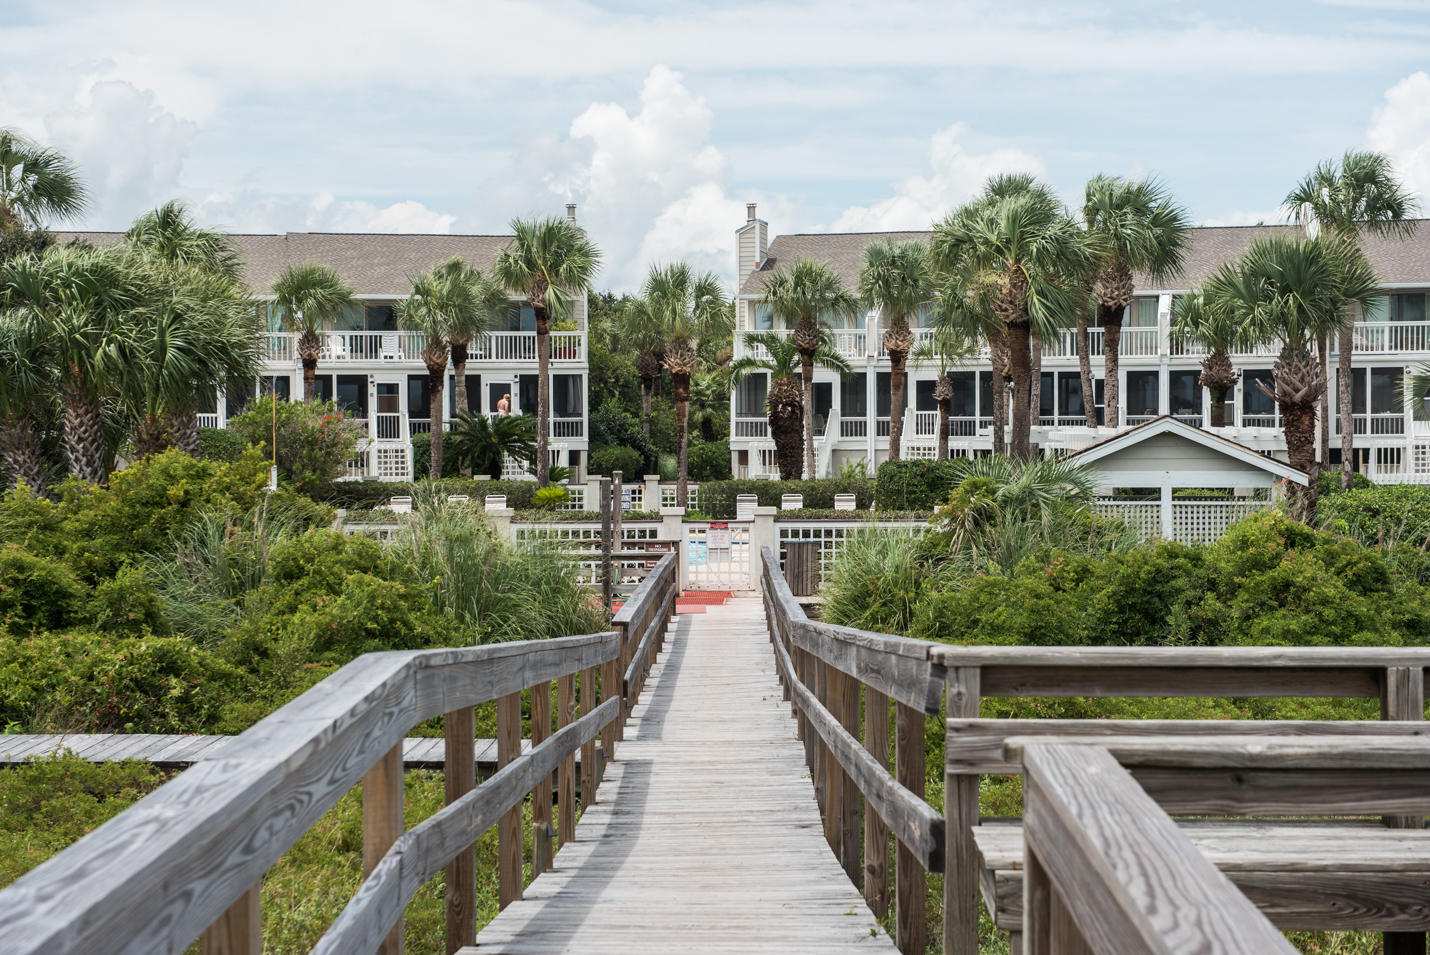 Beach Club Villas Homes For Sale - 66 Beach Club Villas, Isle of Palms, SC - 9